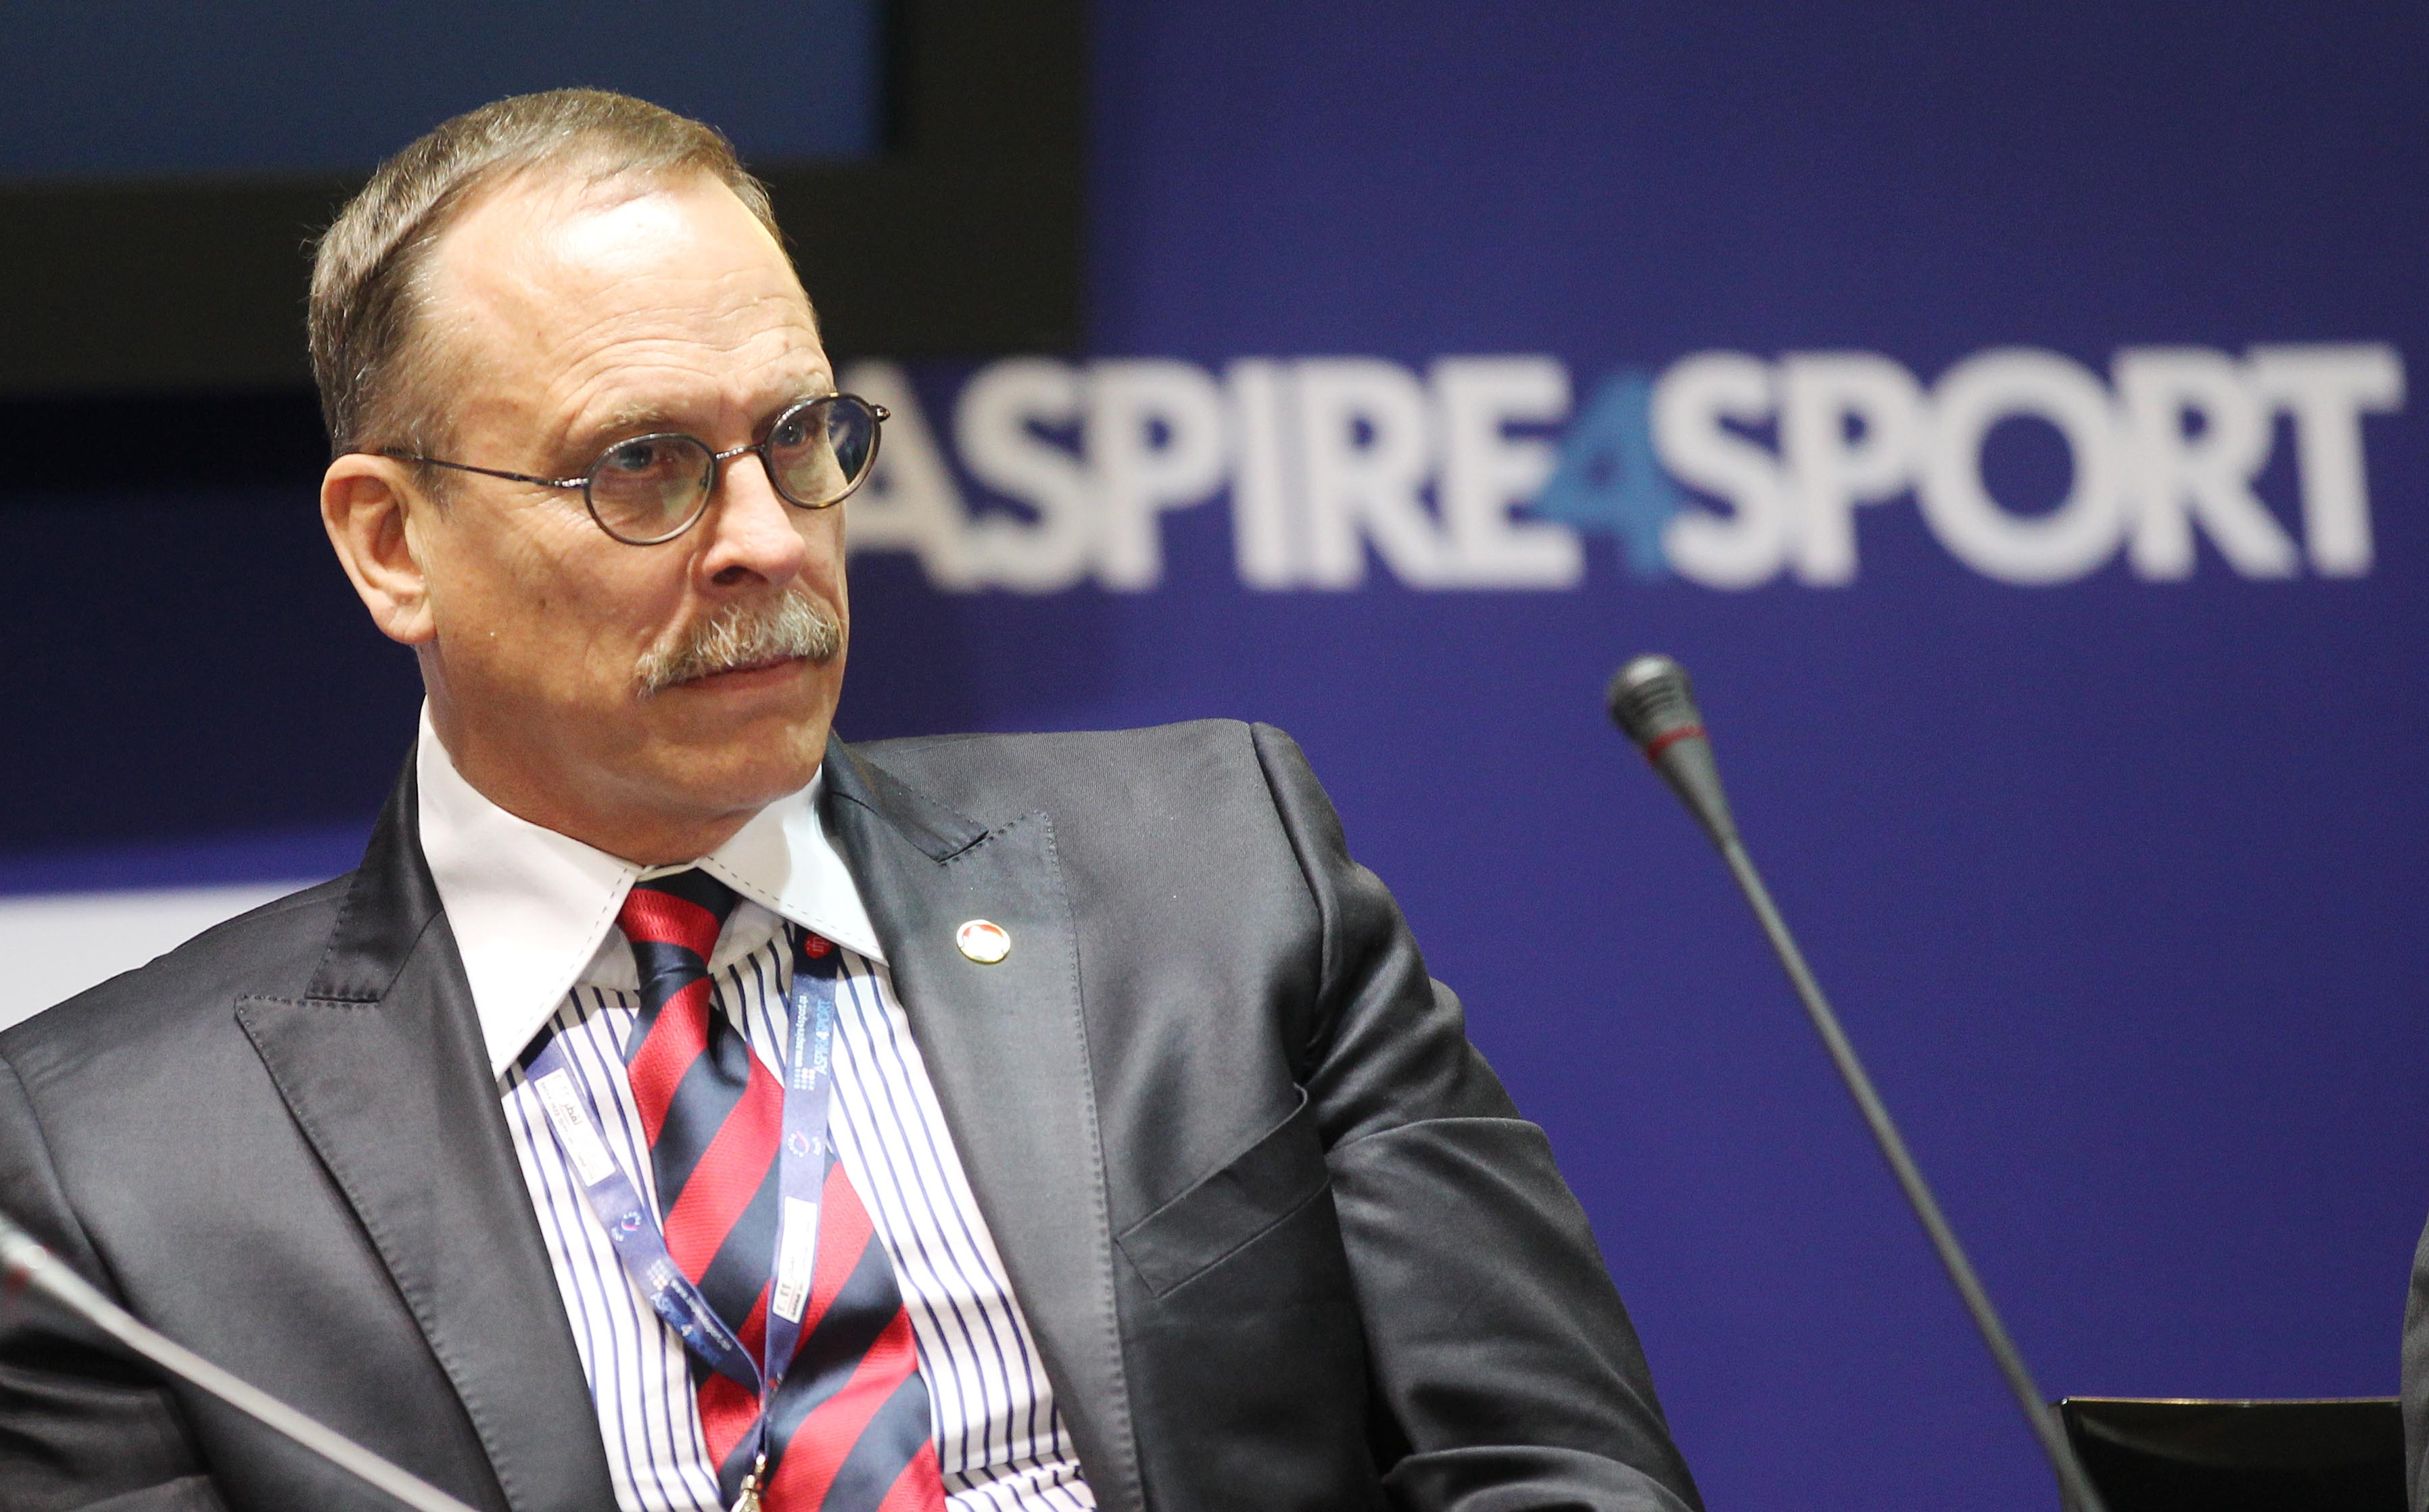 Chris Eaton takes up post at the International Centre for Sport Security (ICSS)